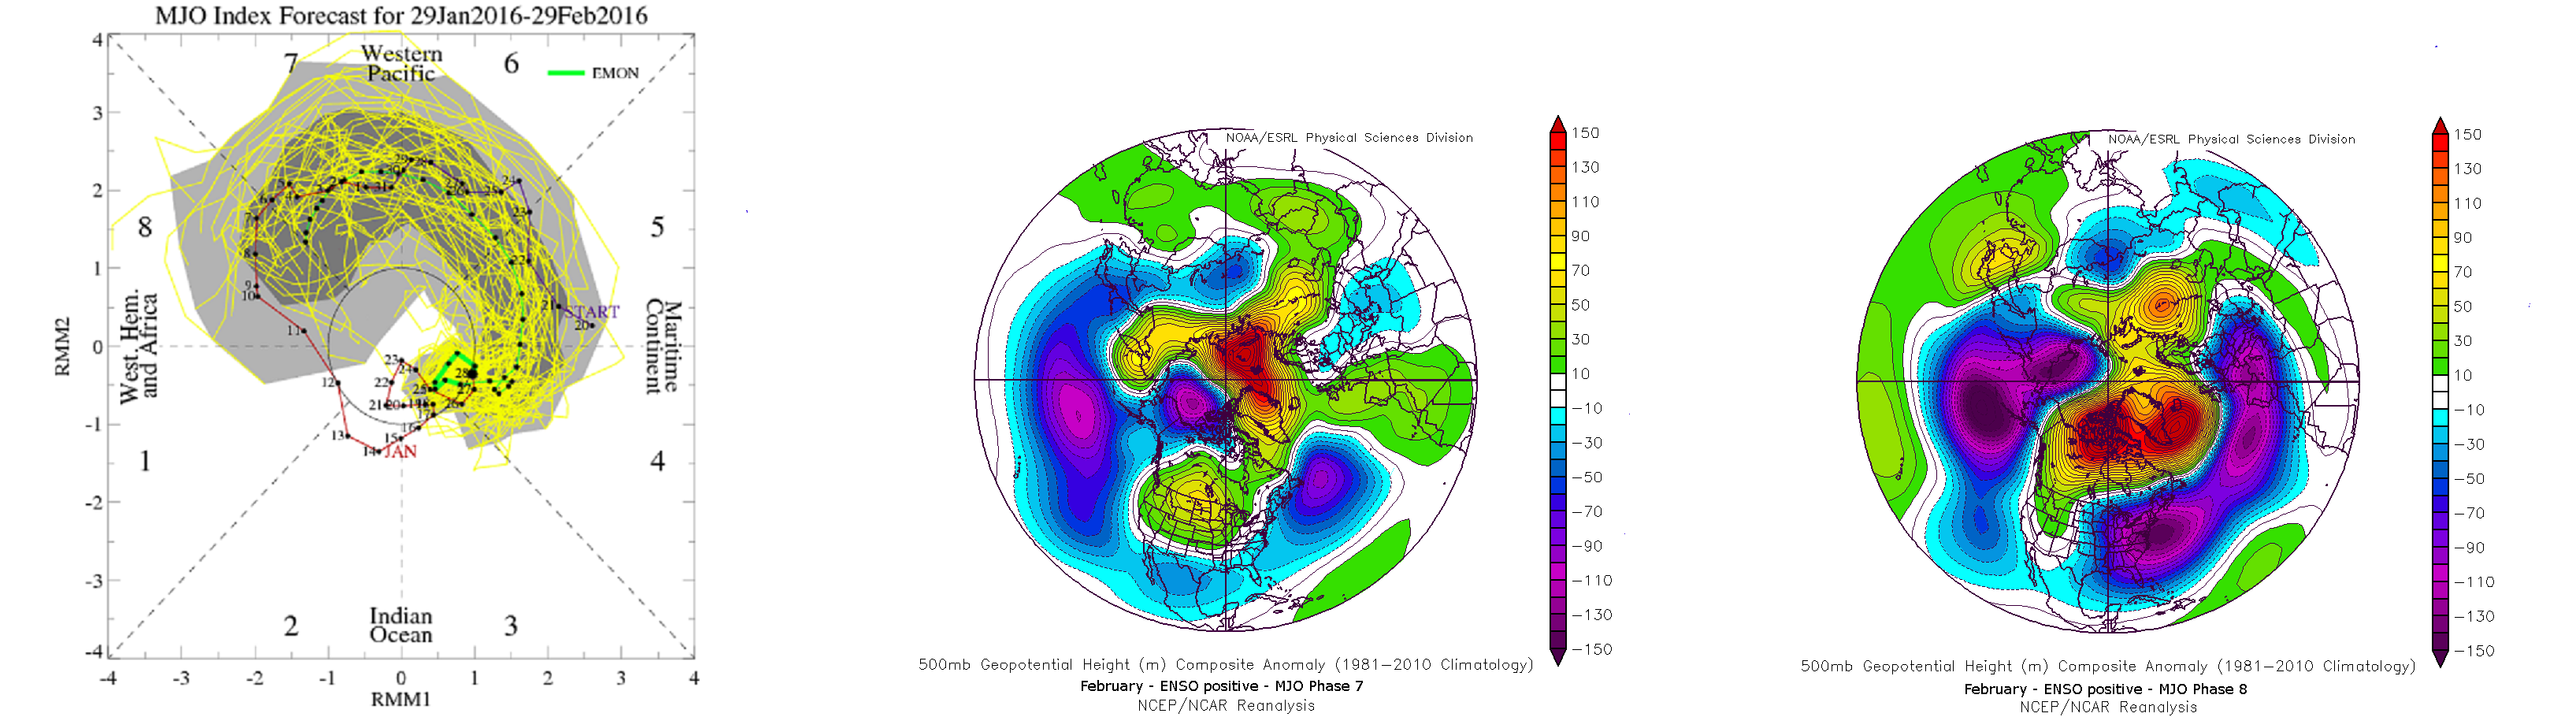 Euro weeklies forecast showing the MJO propagating in phase through into phase 7 and 8. (left-most image credit: CPC ). 500mb mean anomaly composites for the phases 7 and 8 in February during El Nino (right 2 images credit MeteoNetwork)